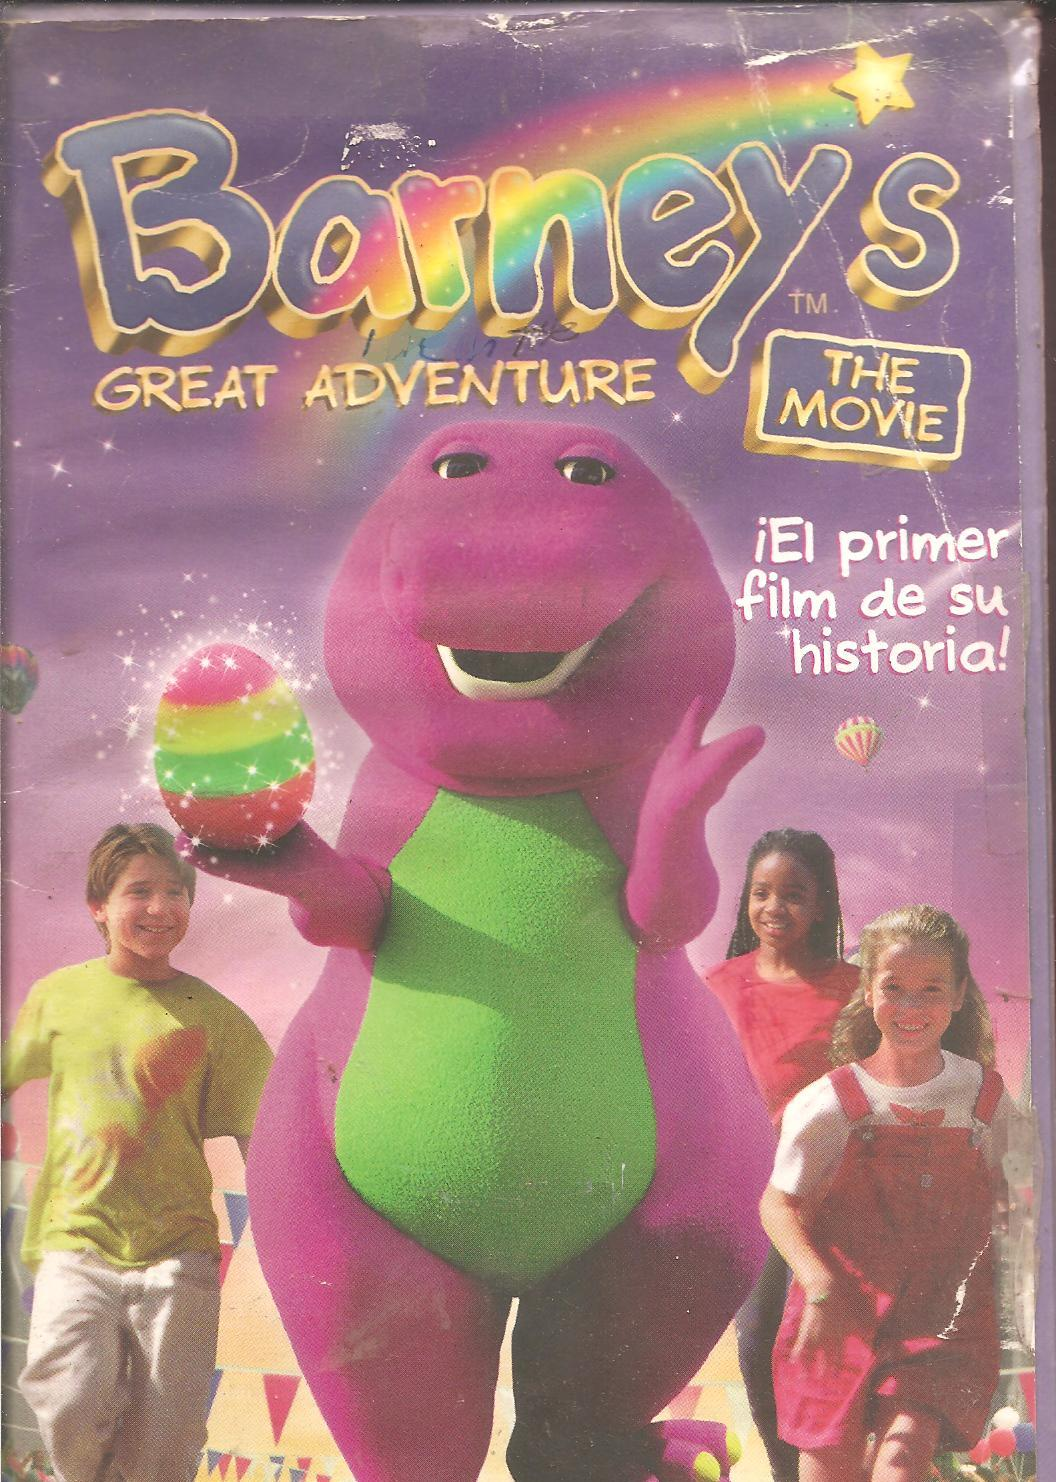 Barneys Great Adventure Barney Wiki FANDOM Powered By Wikia - Concert barney wiki